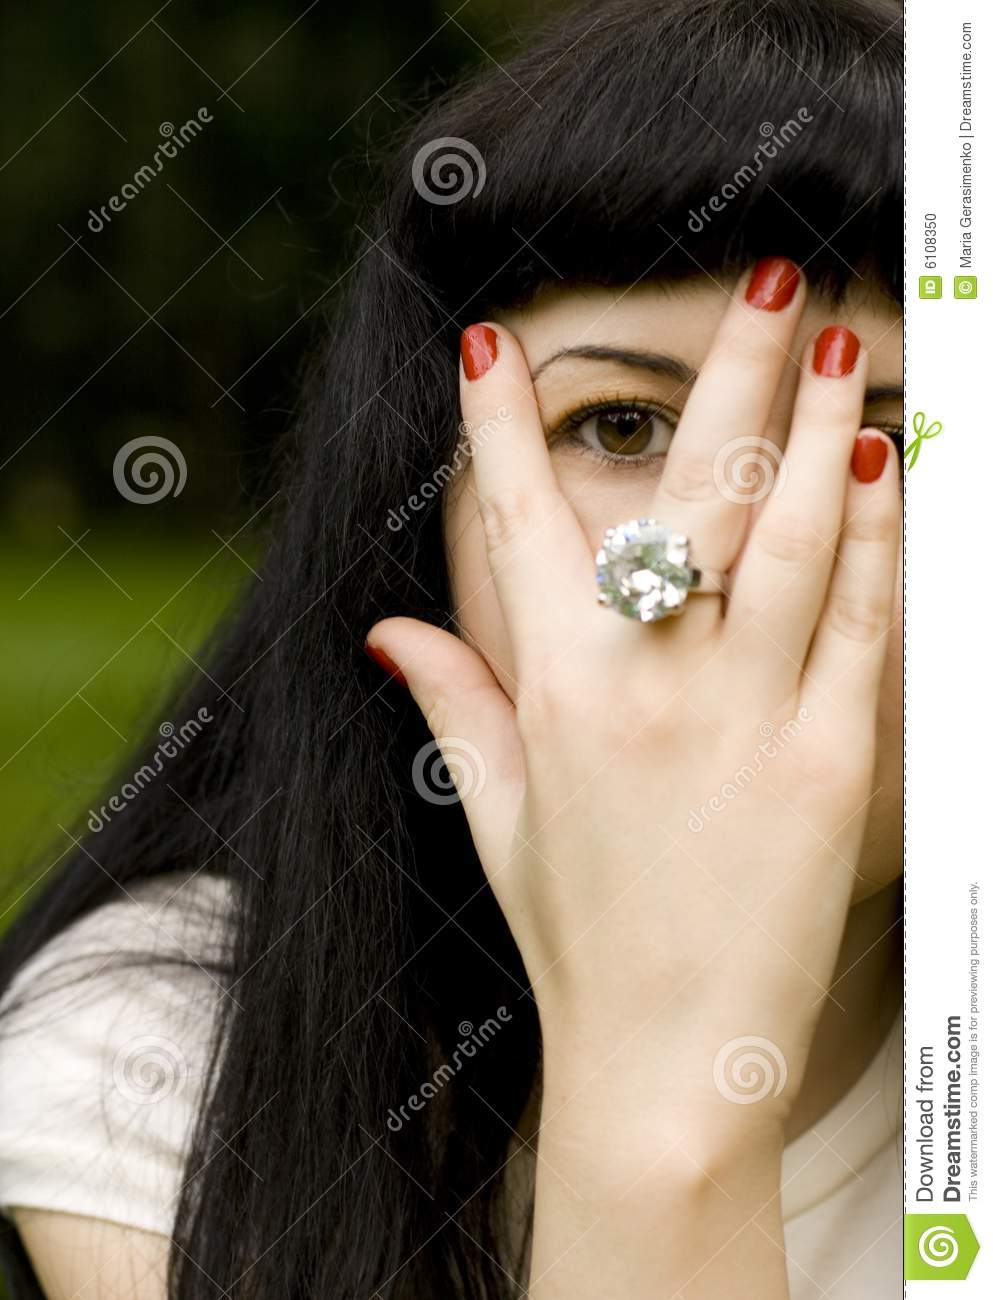 Girl Covering Her Face Stock Photo Image 6108350